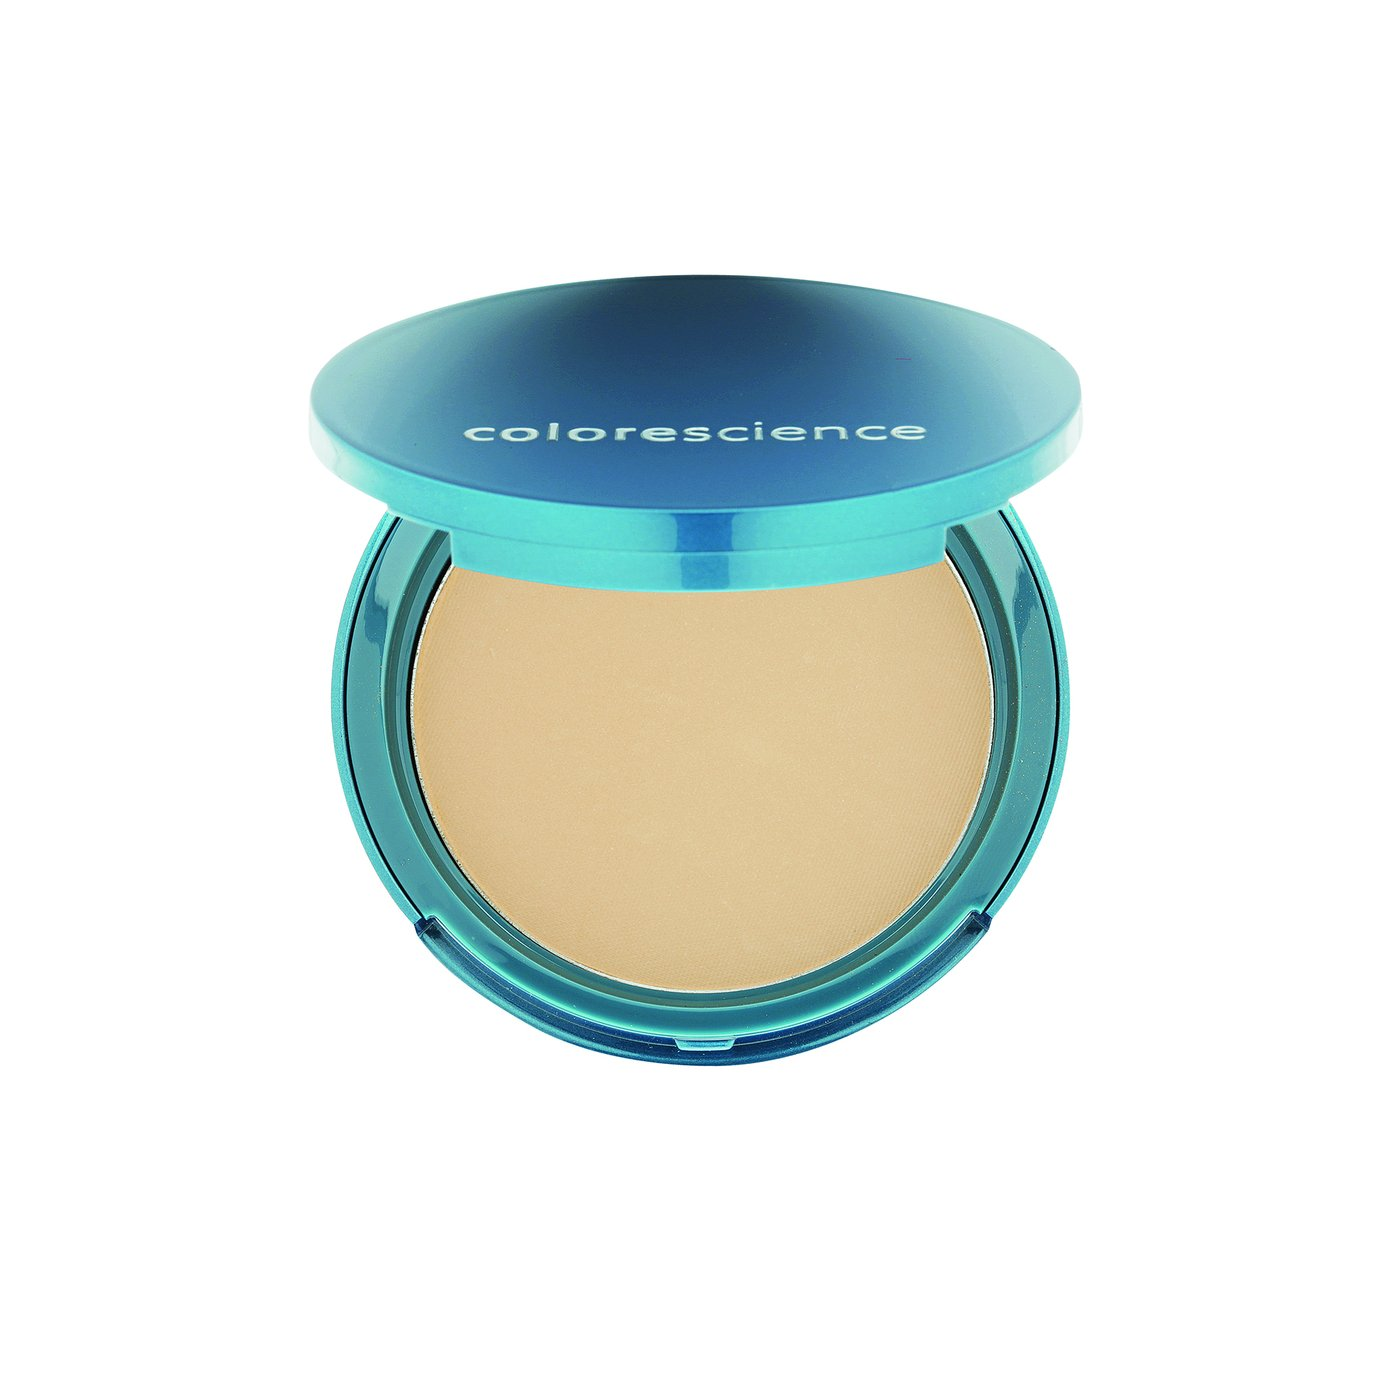 Colorescience Pressed Mineral Foundation Medium Light Ivory